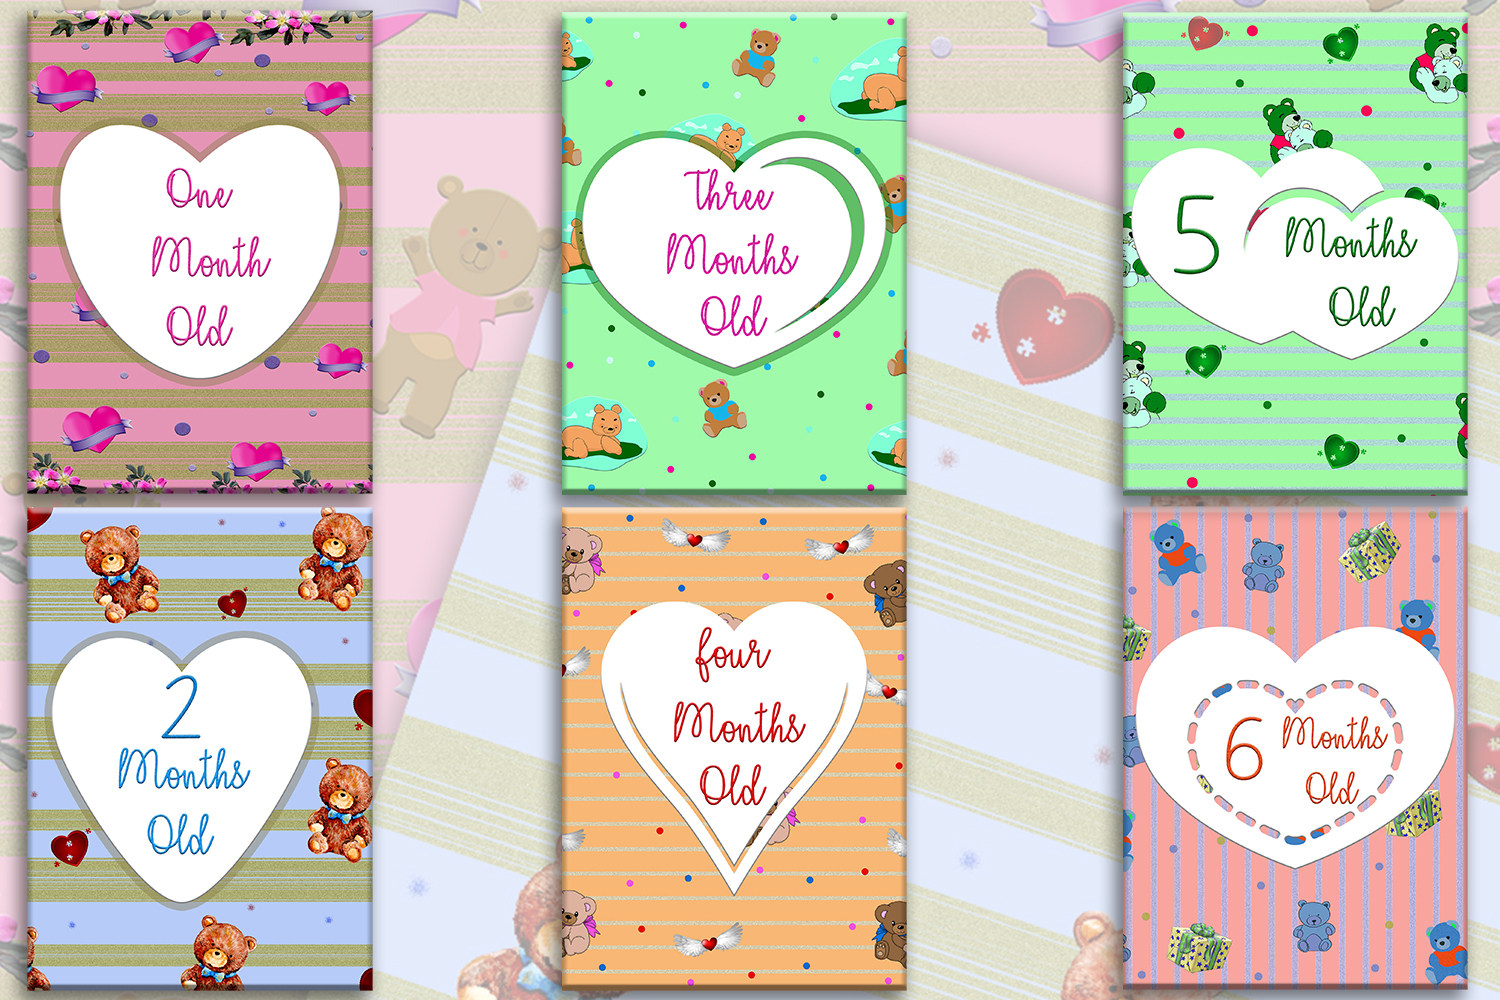 graphic regarding Printable Baby Month Signs called Printable Little one Milestone Playing cards - 1st 12 months Milestone